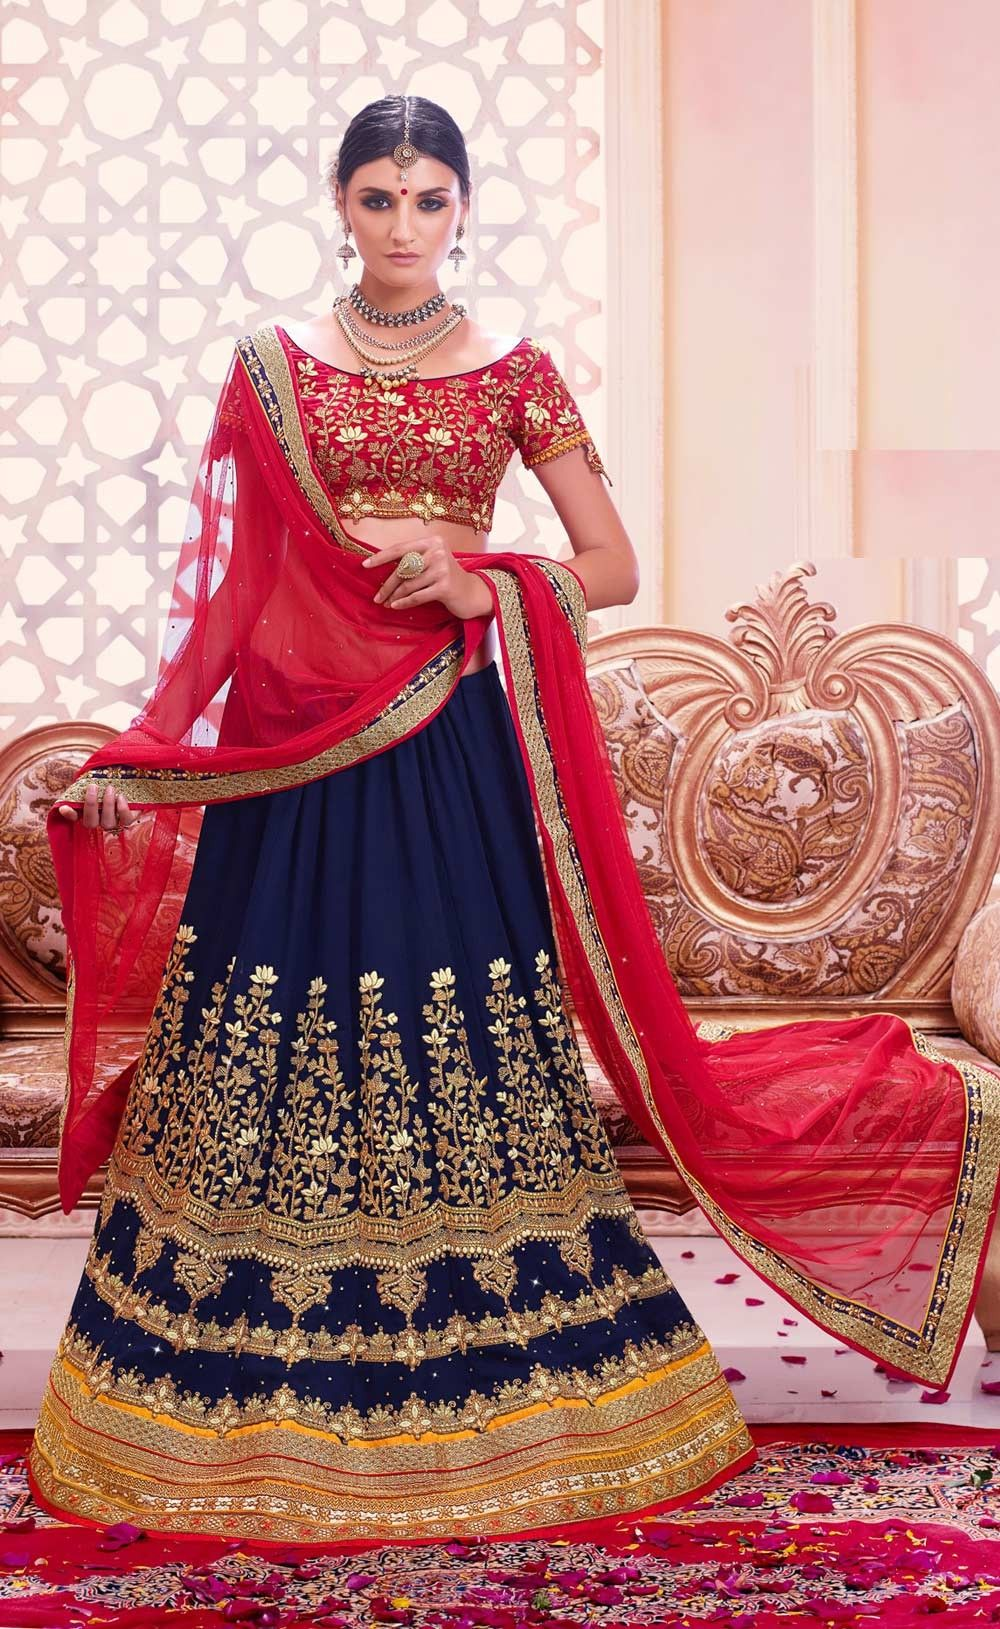 ee44f4e24a Red Brocade Lehenga Choli with Embroidered Net Dupatta | Fashion ...